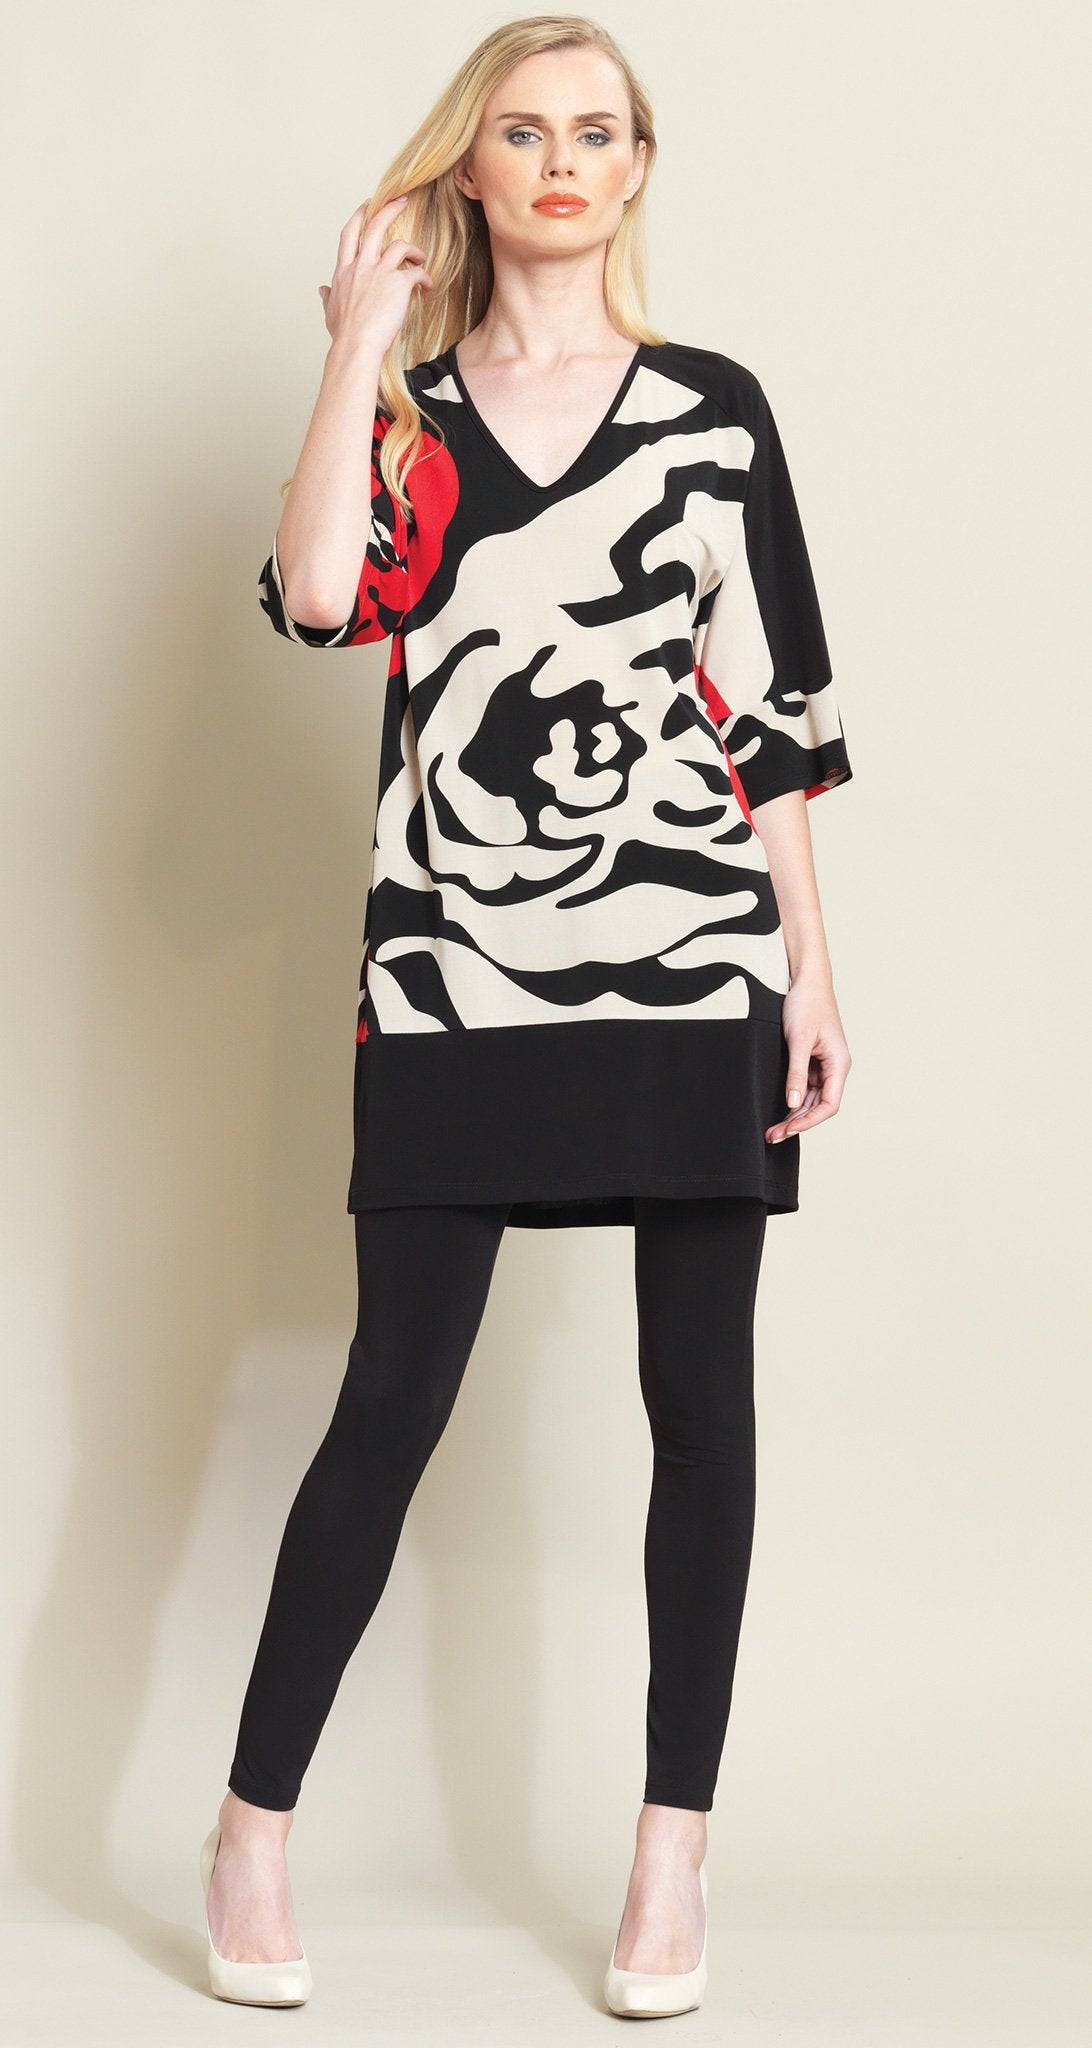 Rose Stamp V Tunic Dress - Beige/Black - Clara Sunwoo